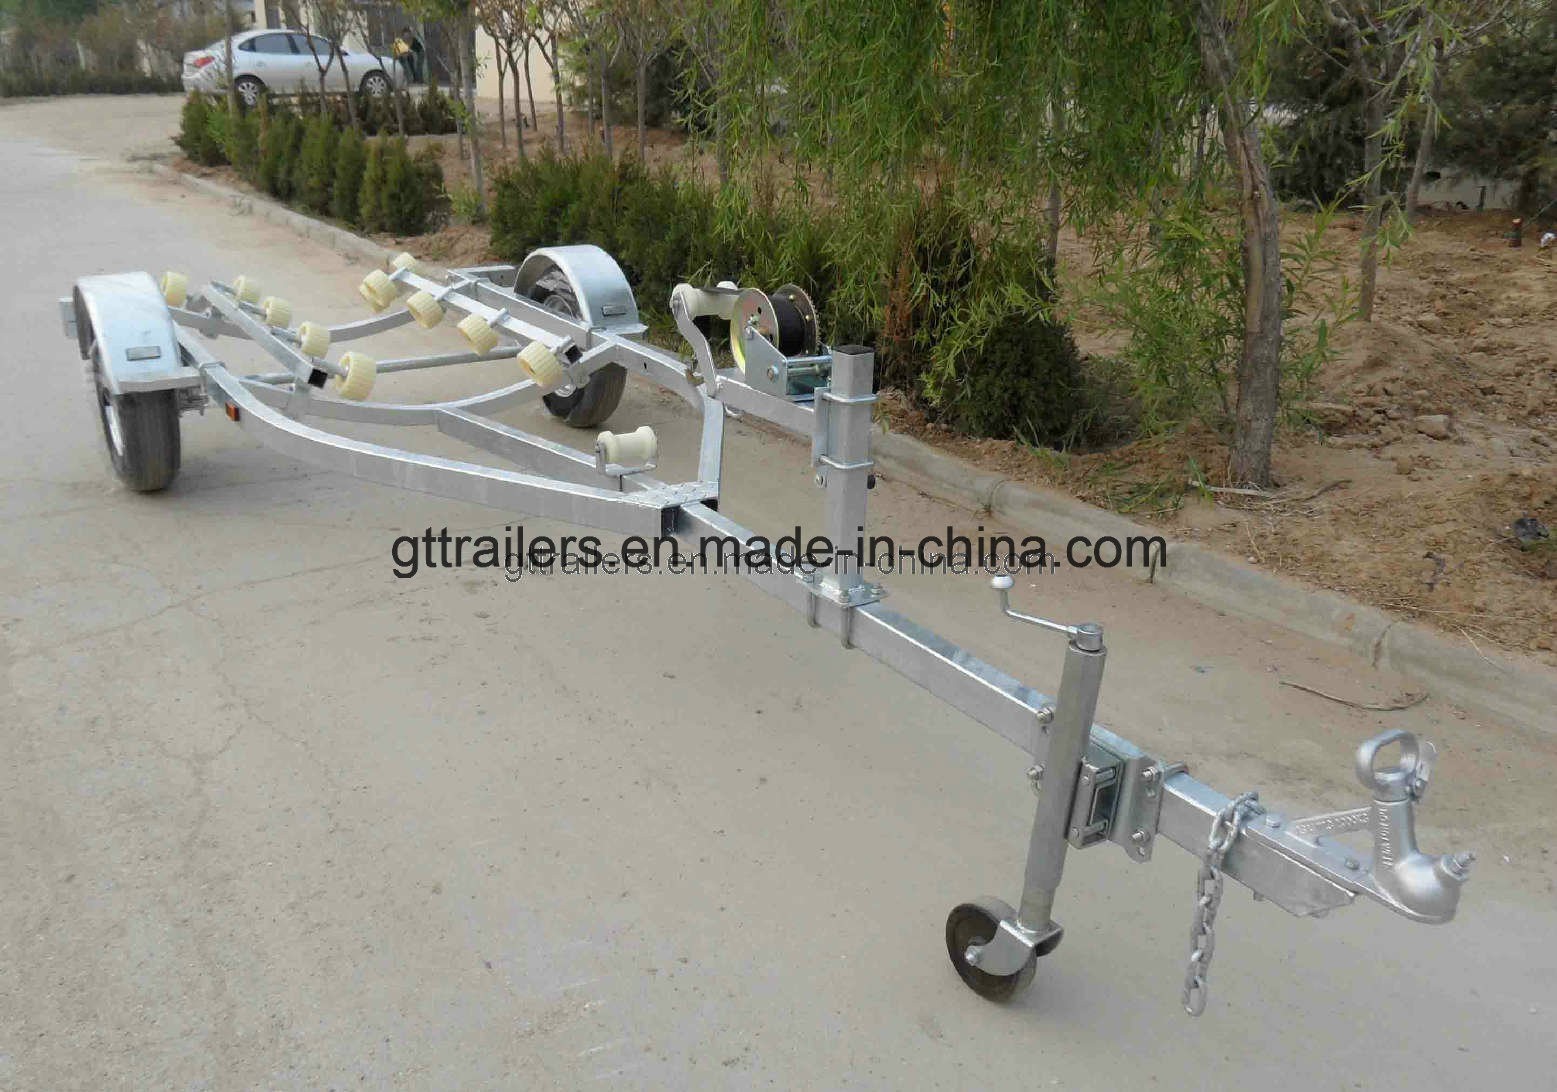 Single Axle Jet Ski Trailer (TR0501E)